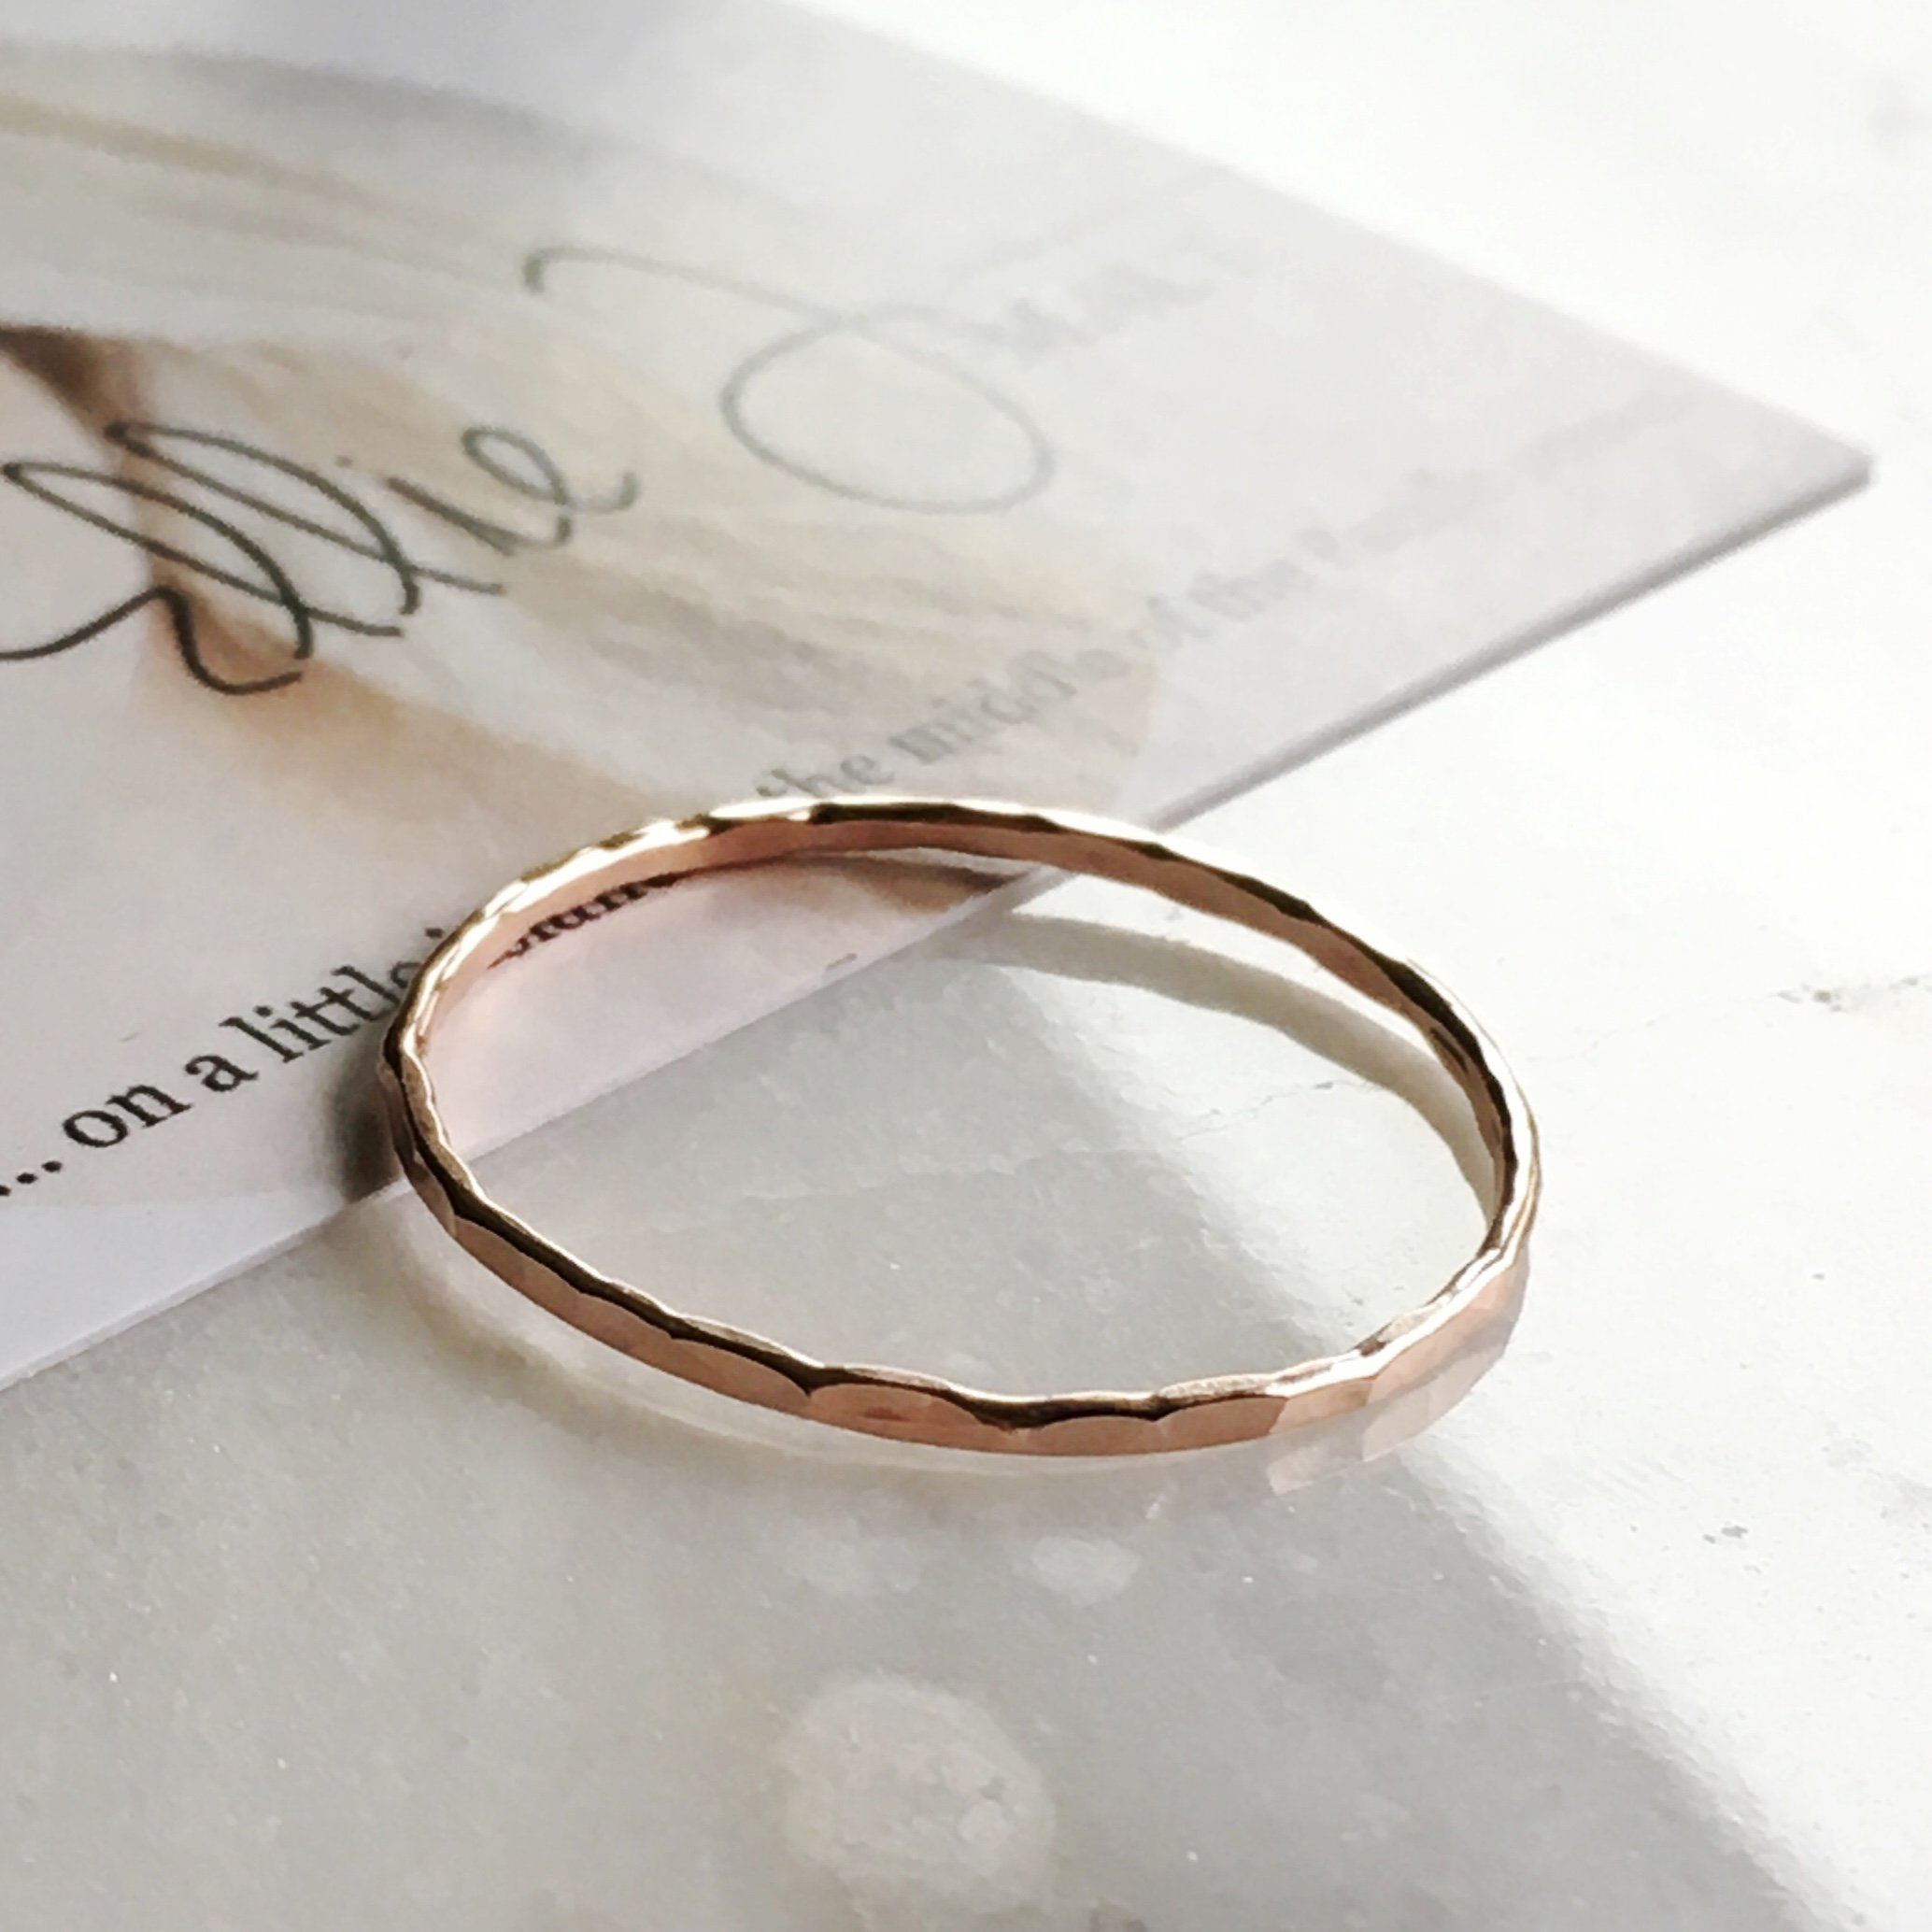 Stacking Ring 14k Rose Gold Filled, Dainty Little Plain Band, Size 4